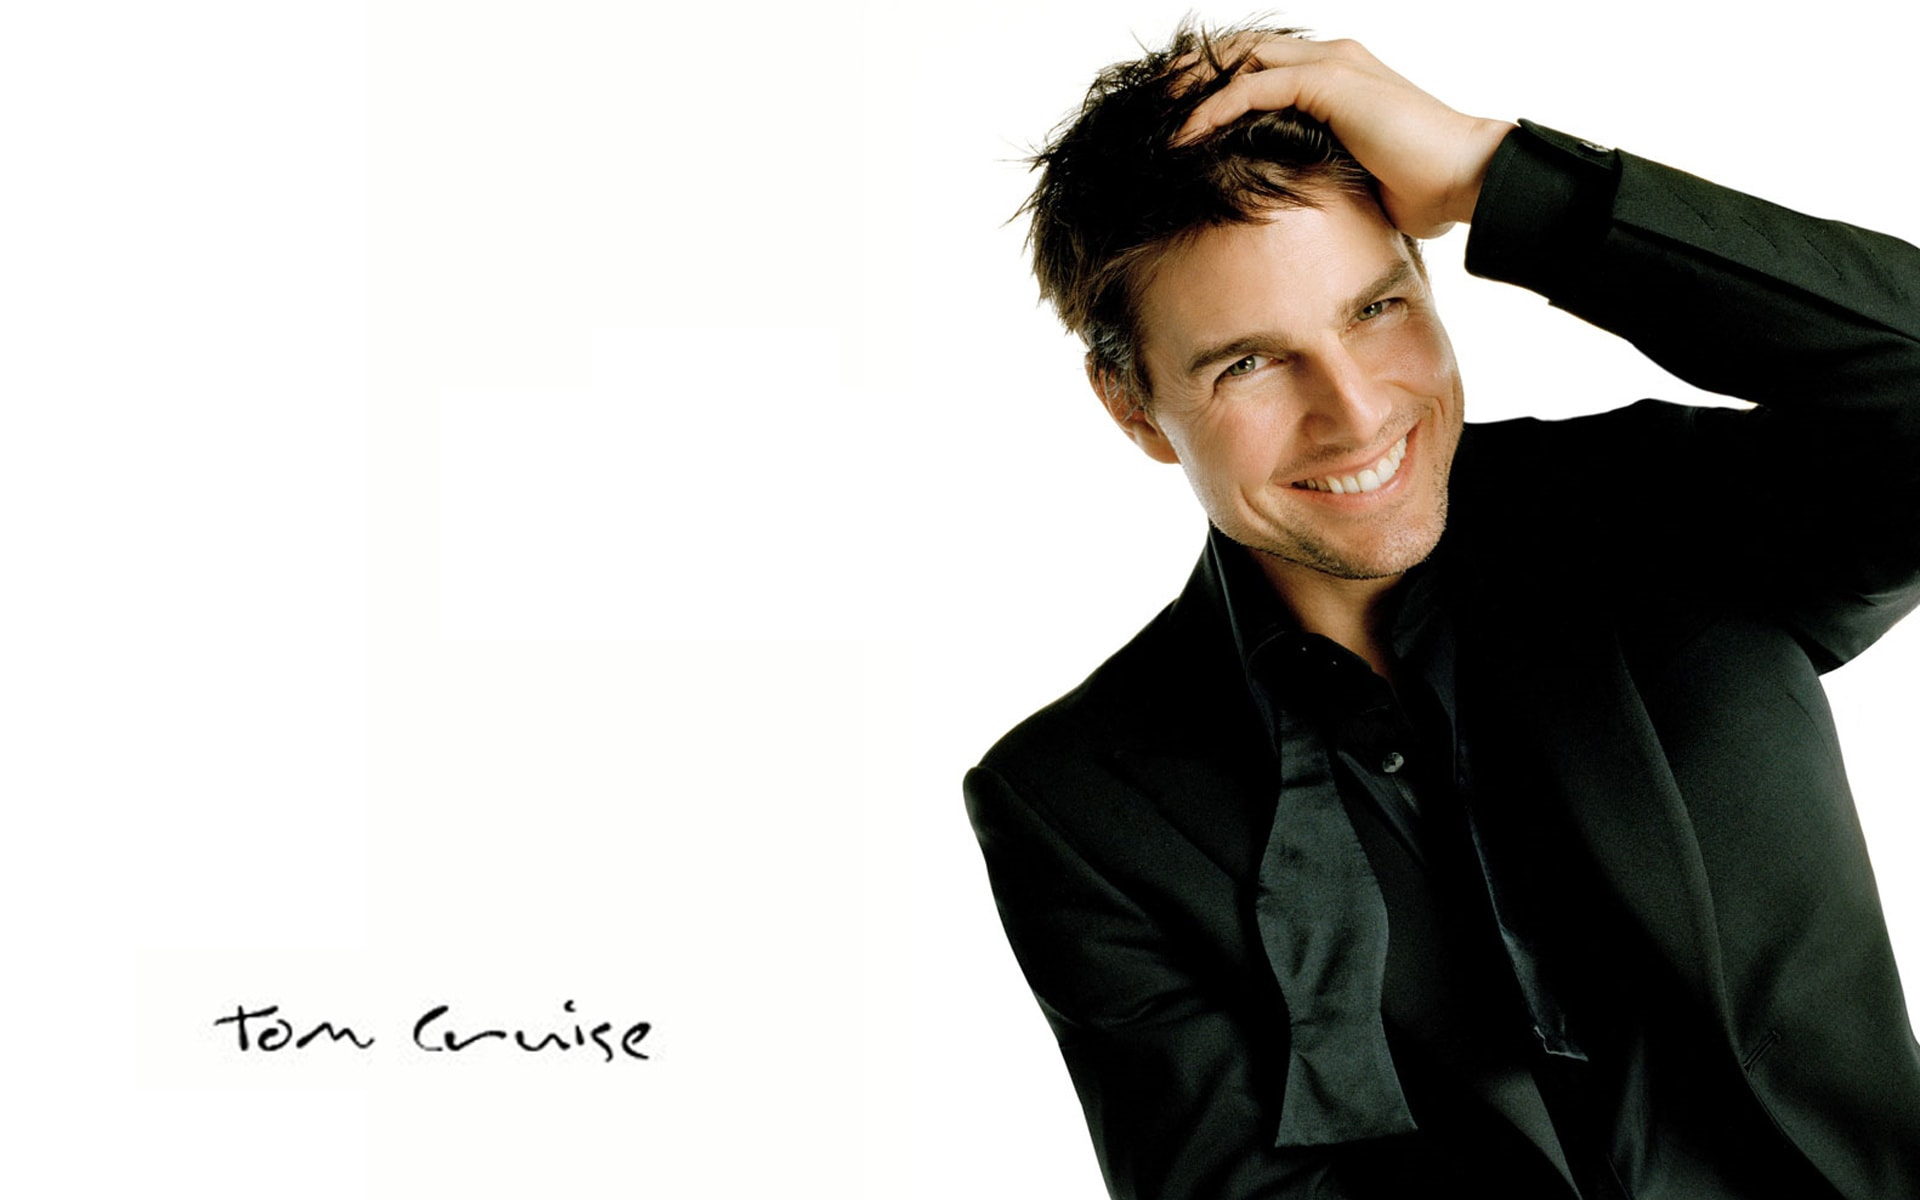 Tom Cruise Wide wallpapers